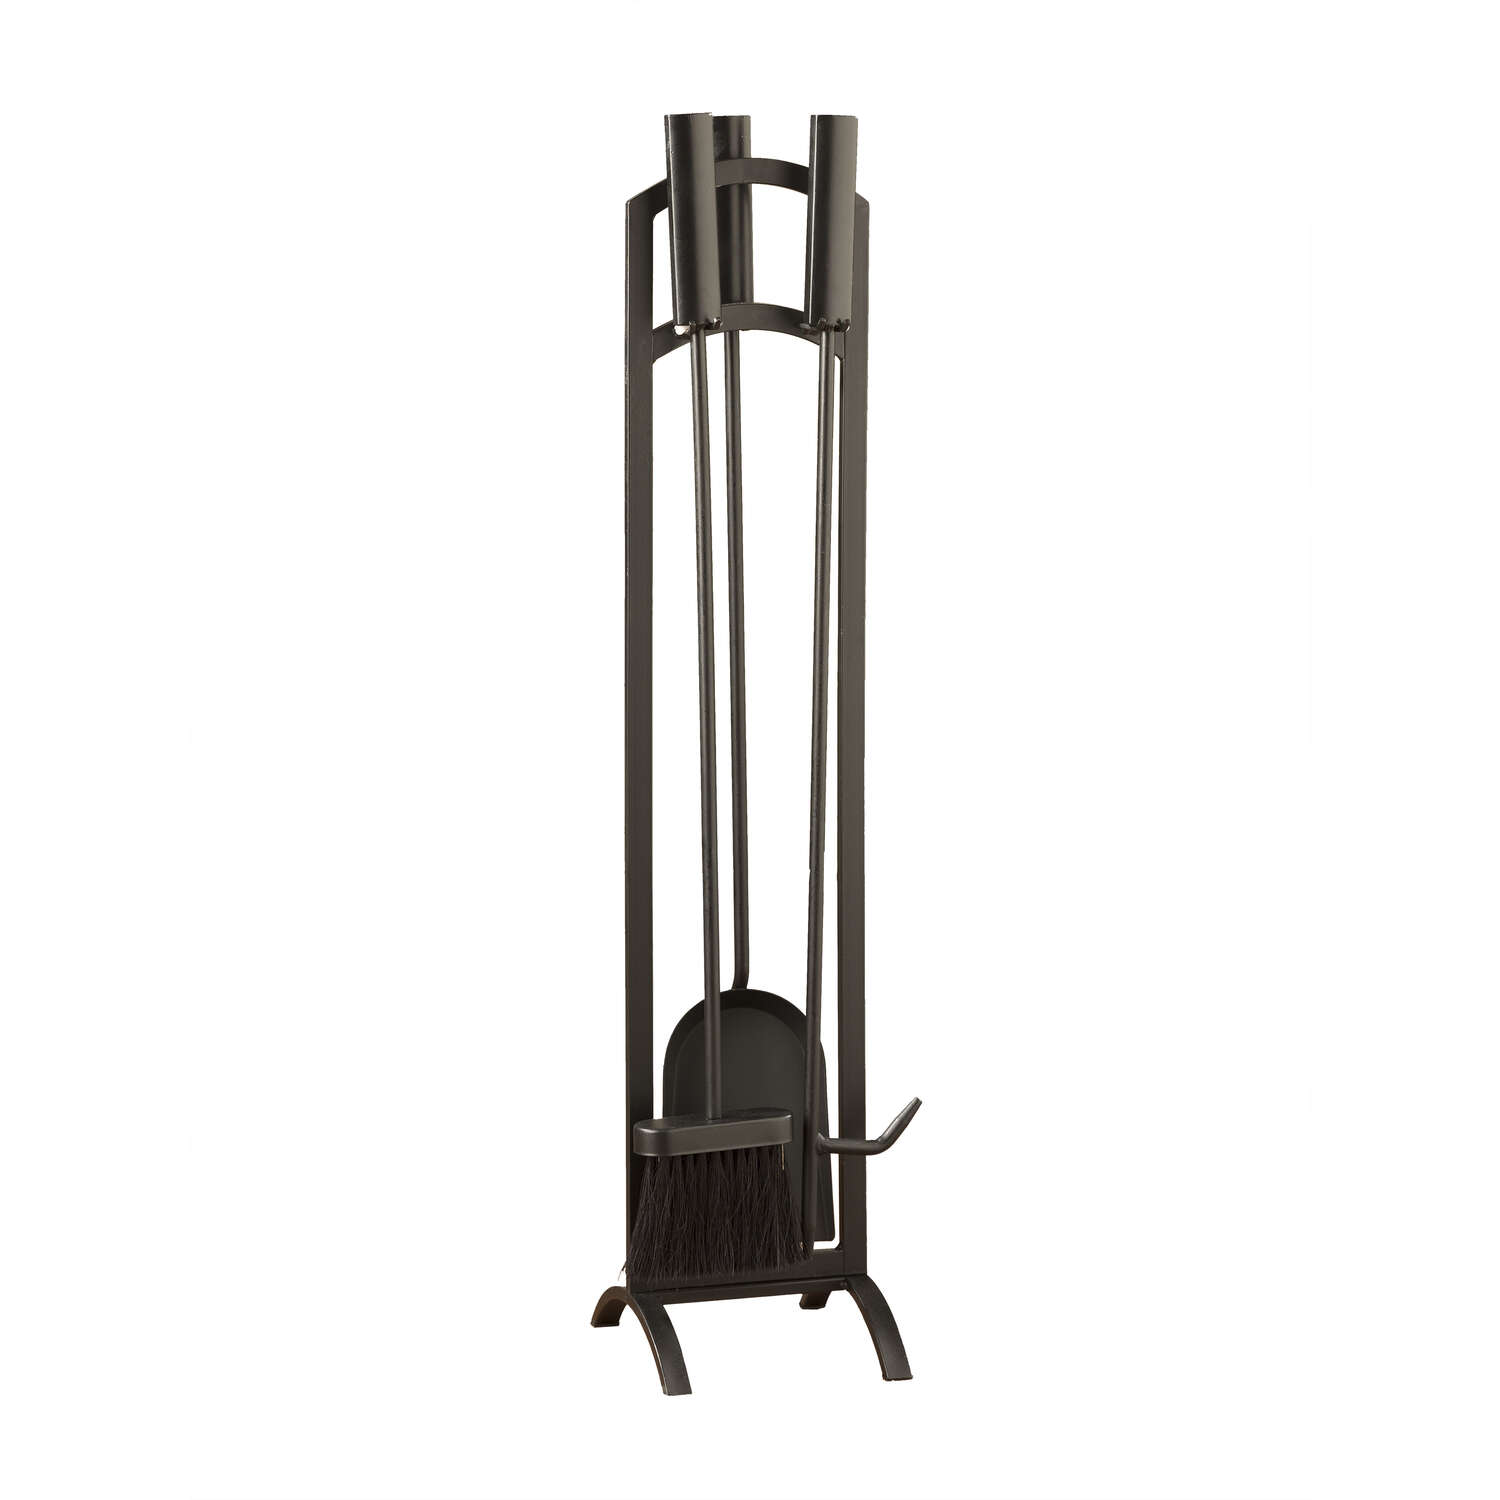 Panacea  Black  Matte  Steel  Fireplace Tool Set